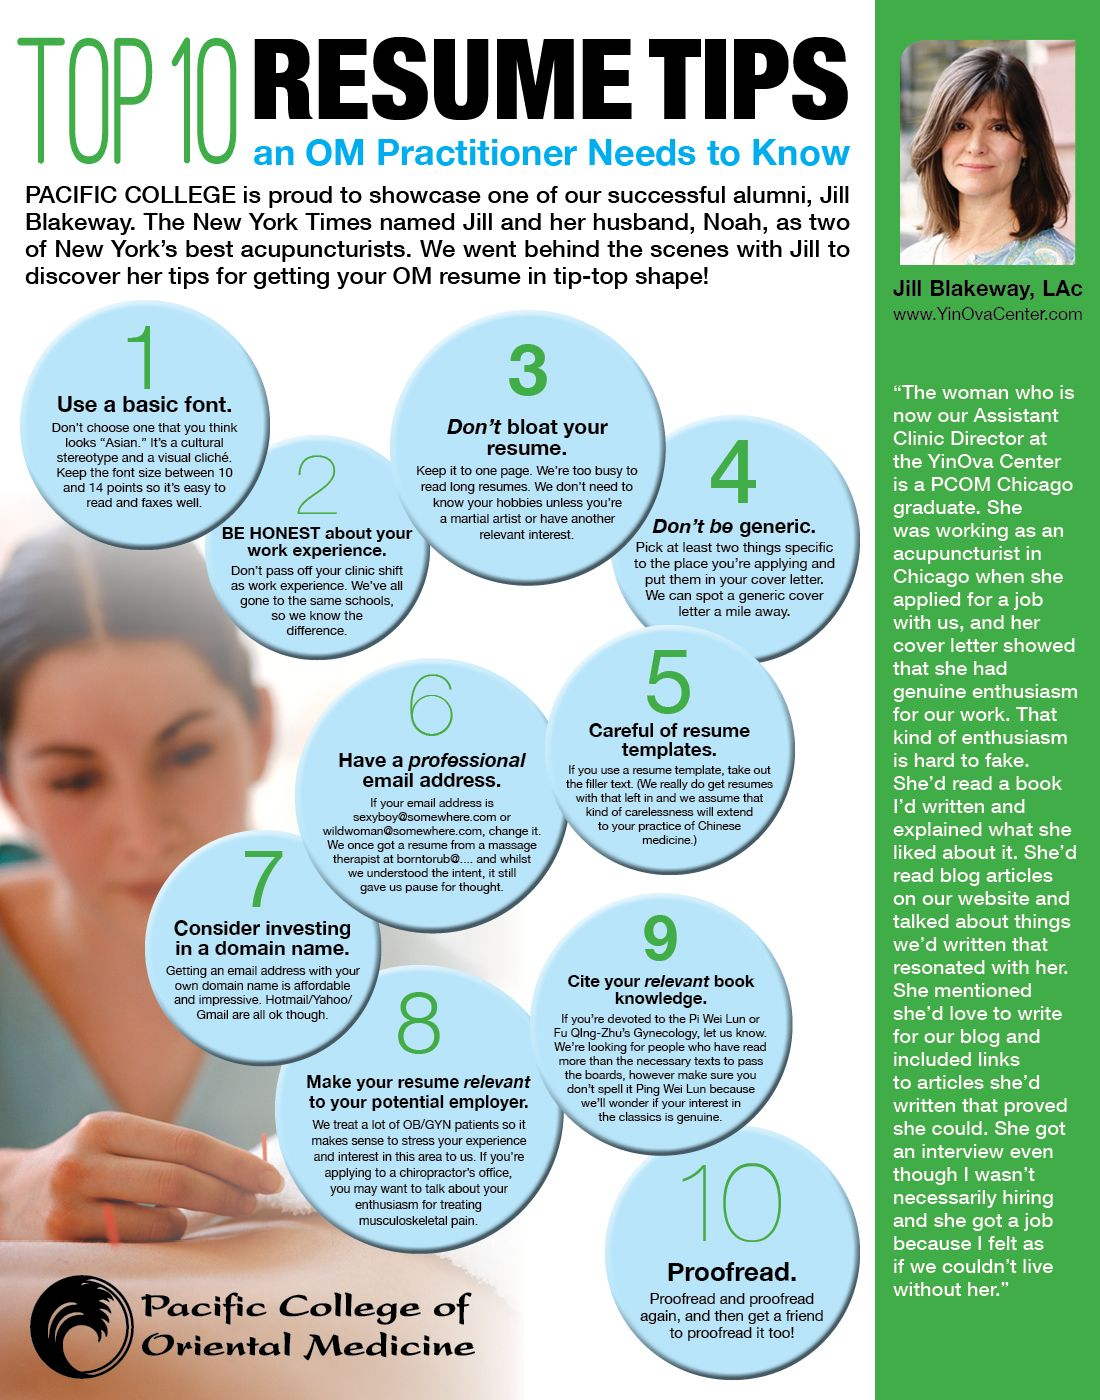 top 10 resume tips an om practitioner needs to know by pcom alumna jill